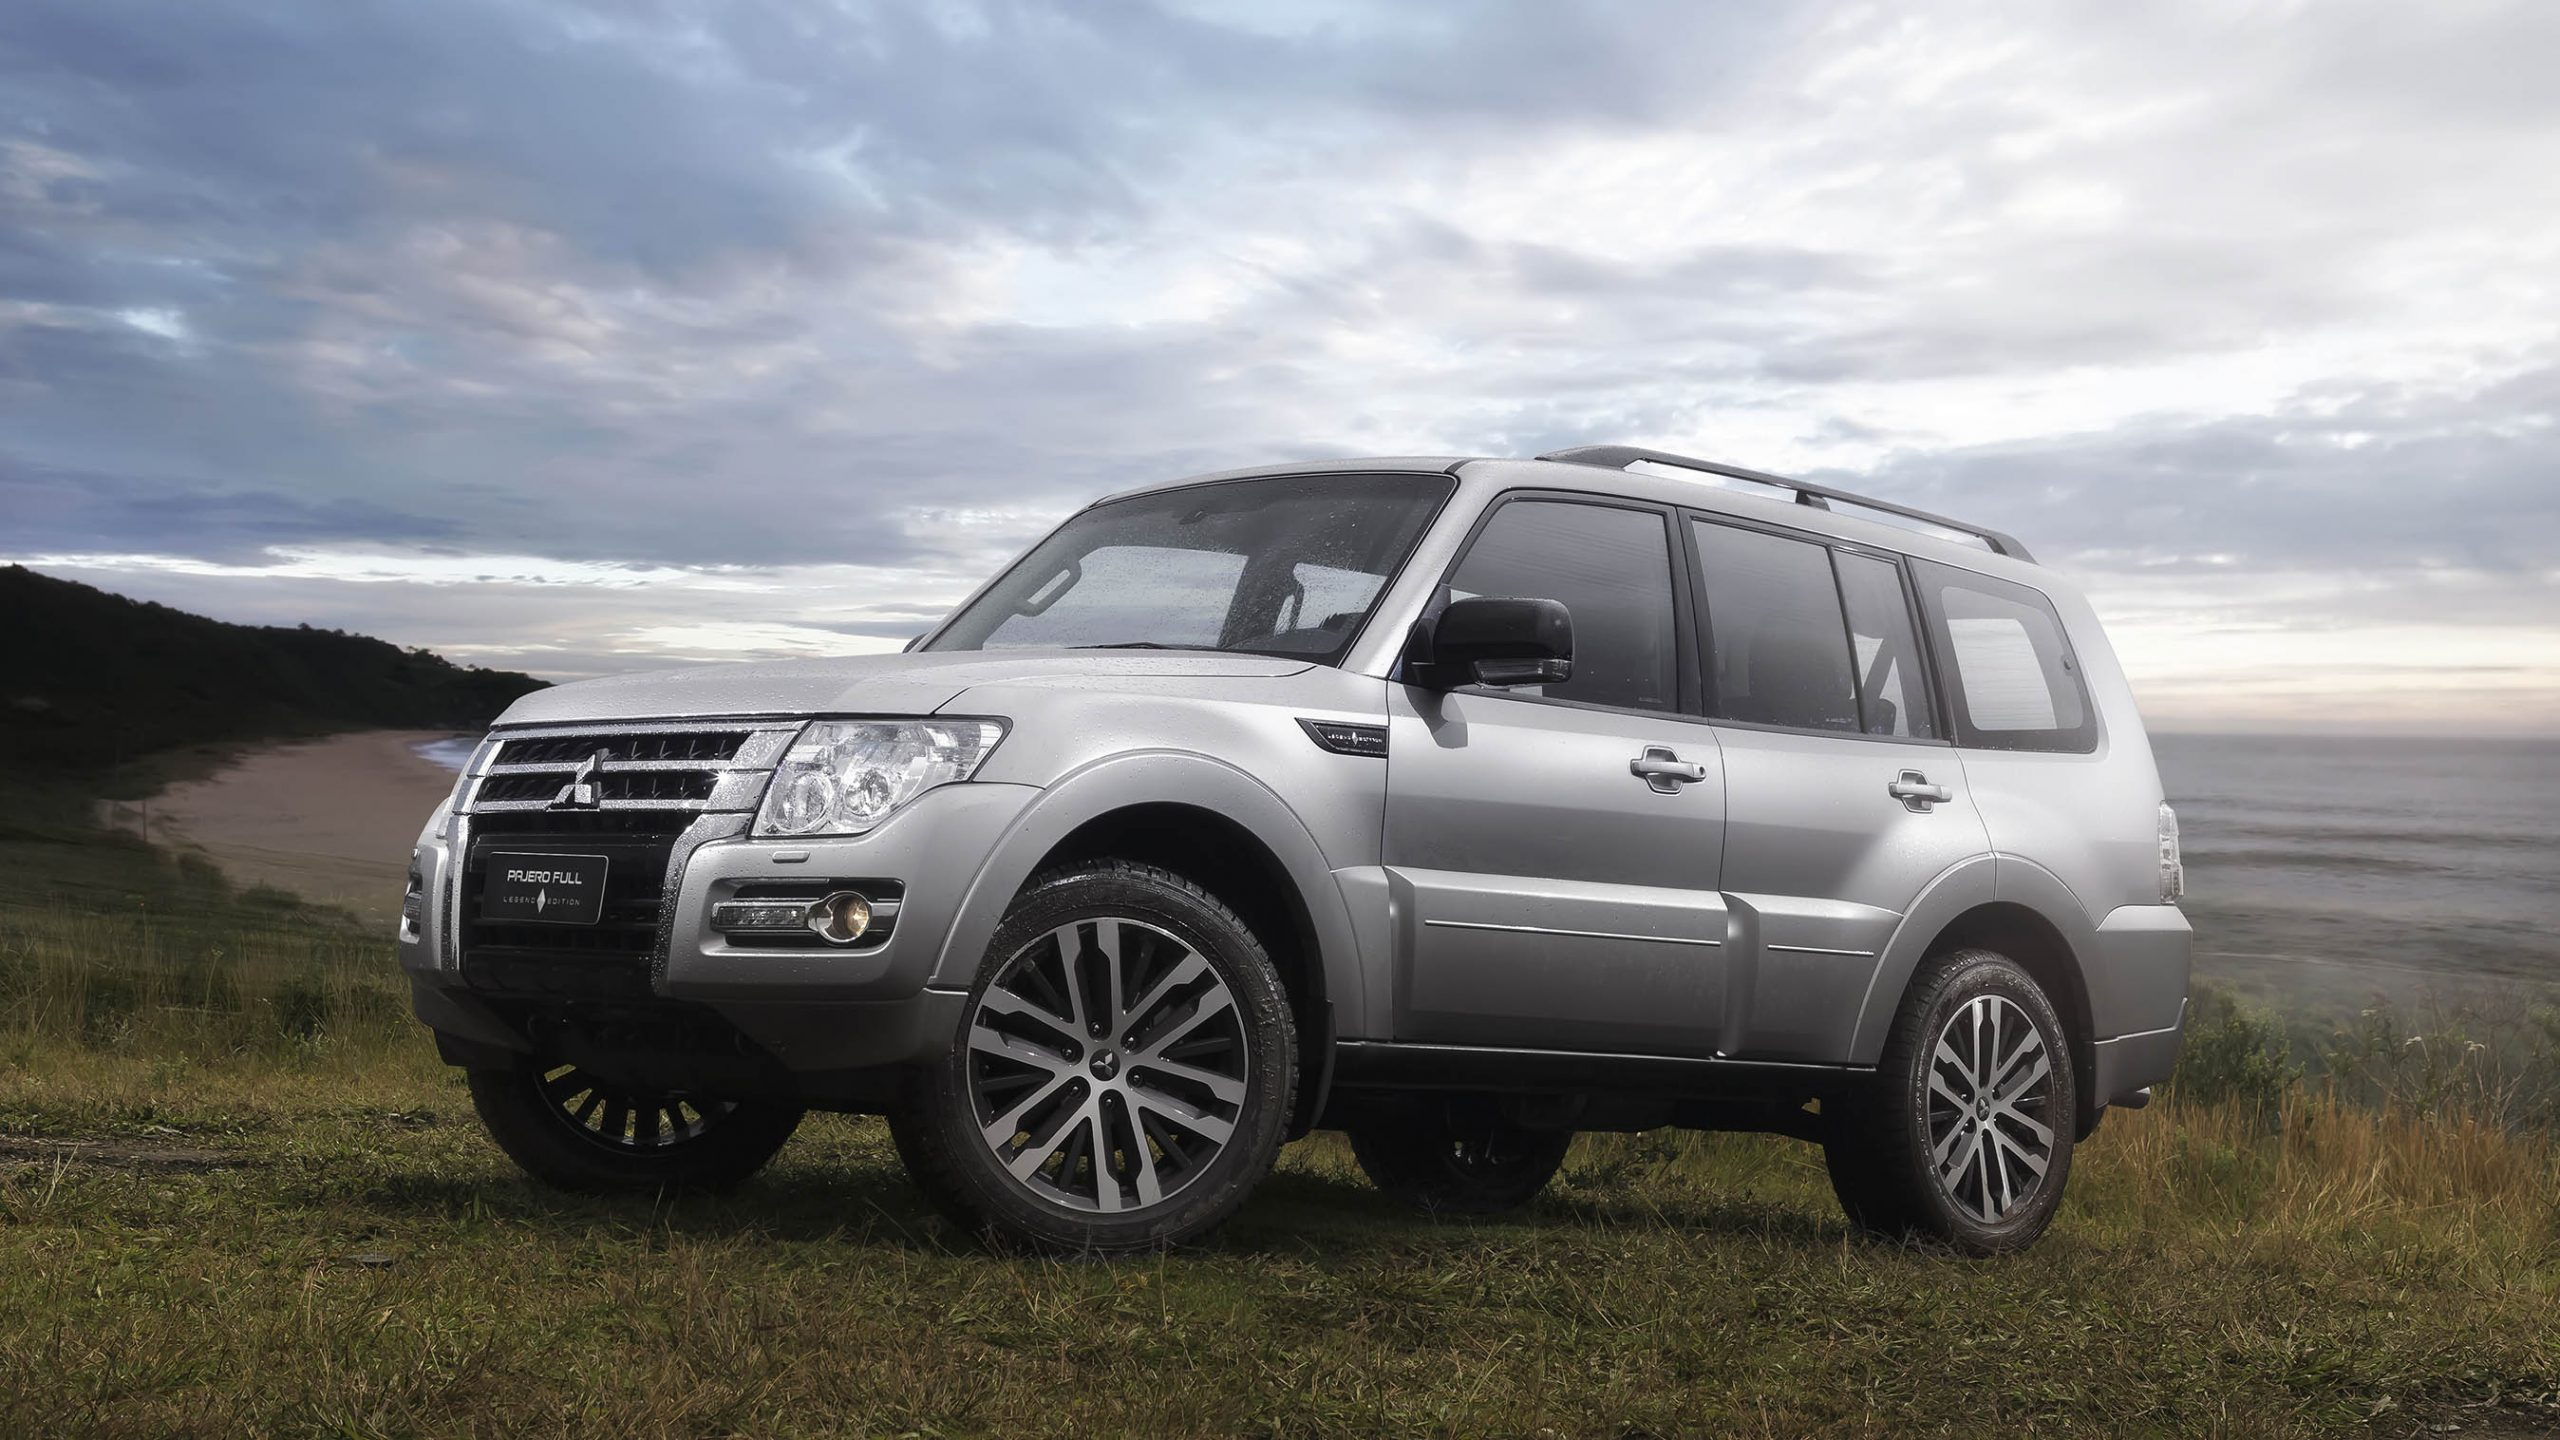 Mitsubishi Pajero Legend Edition marca adeus do SUV